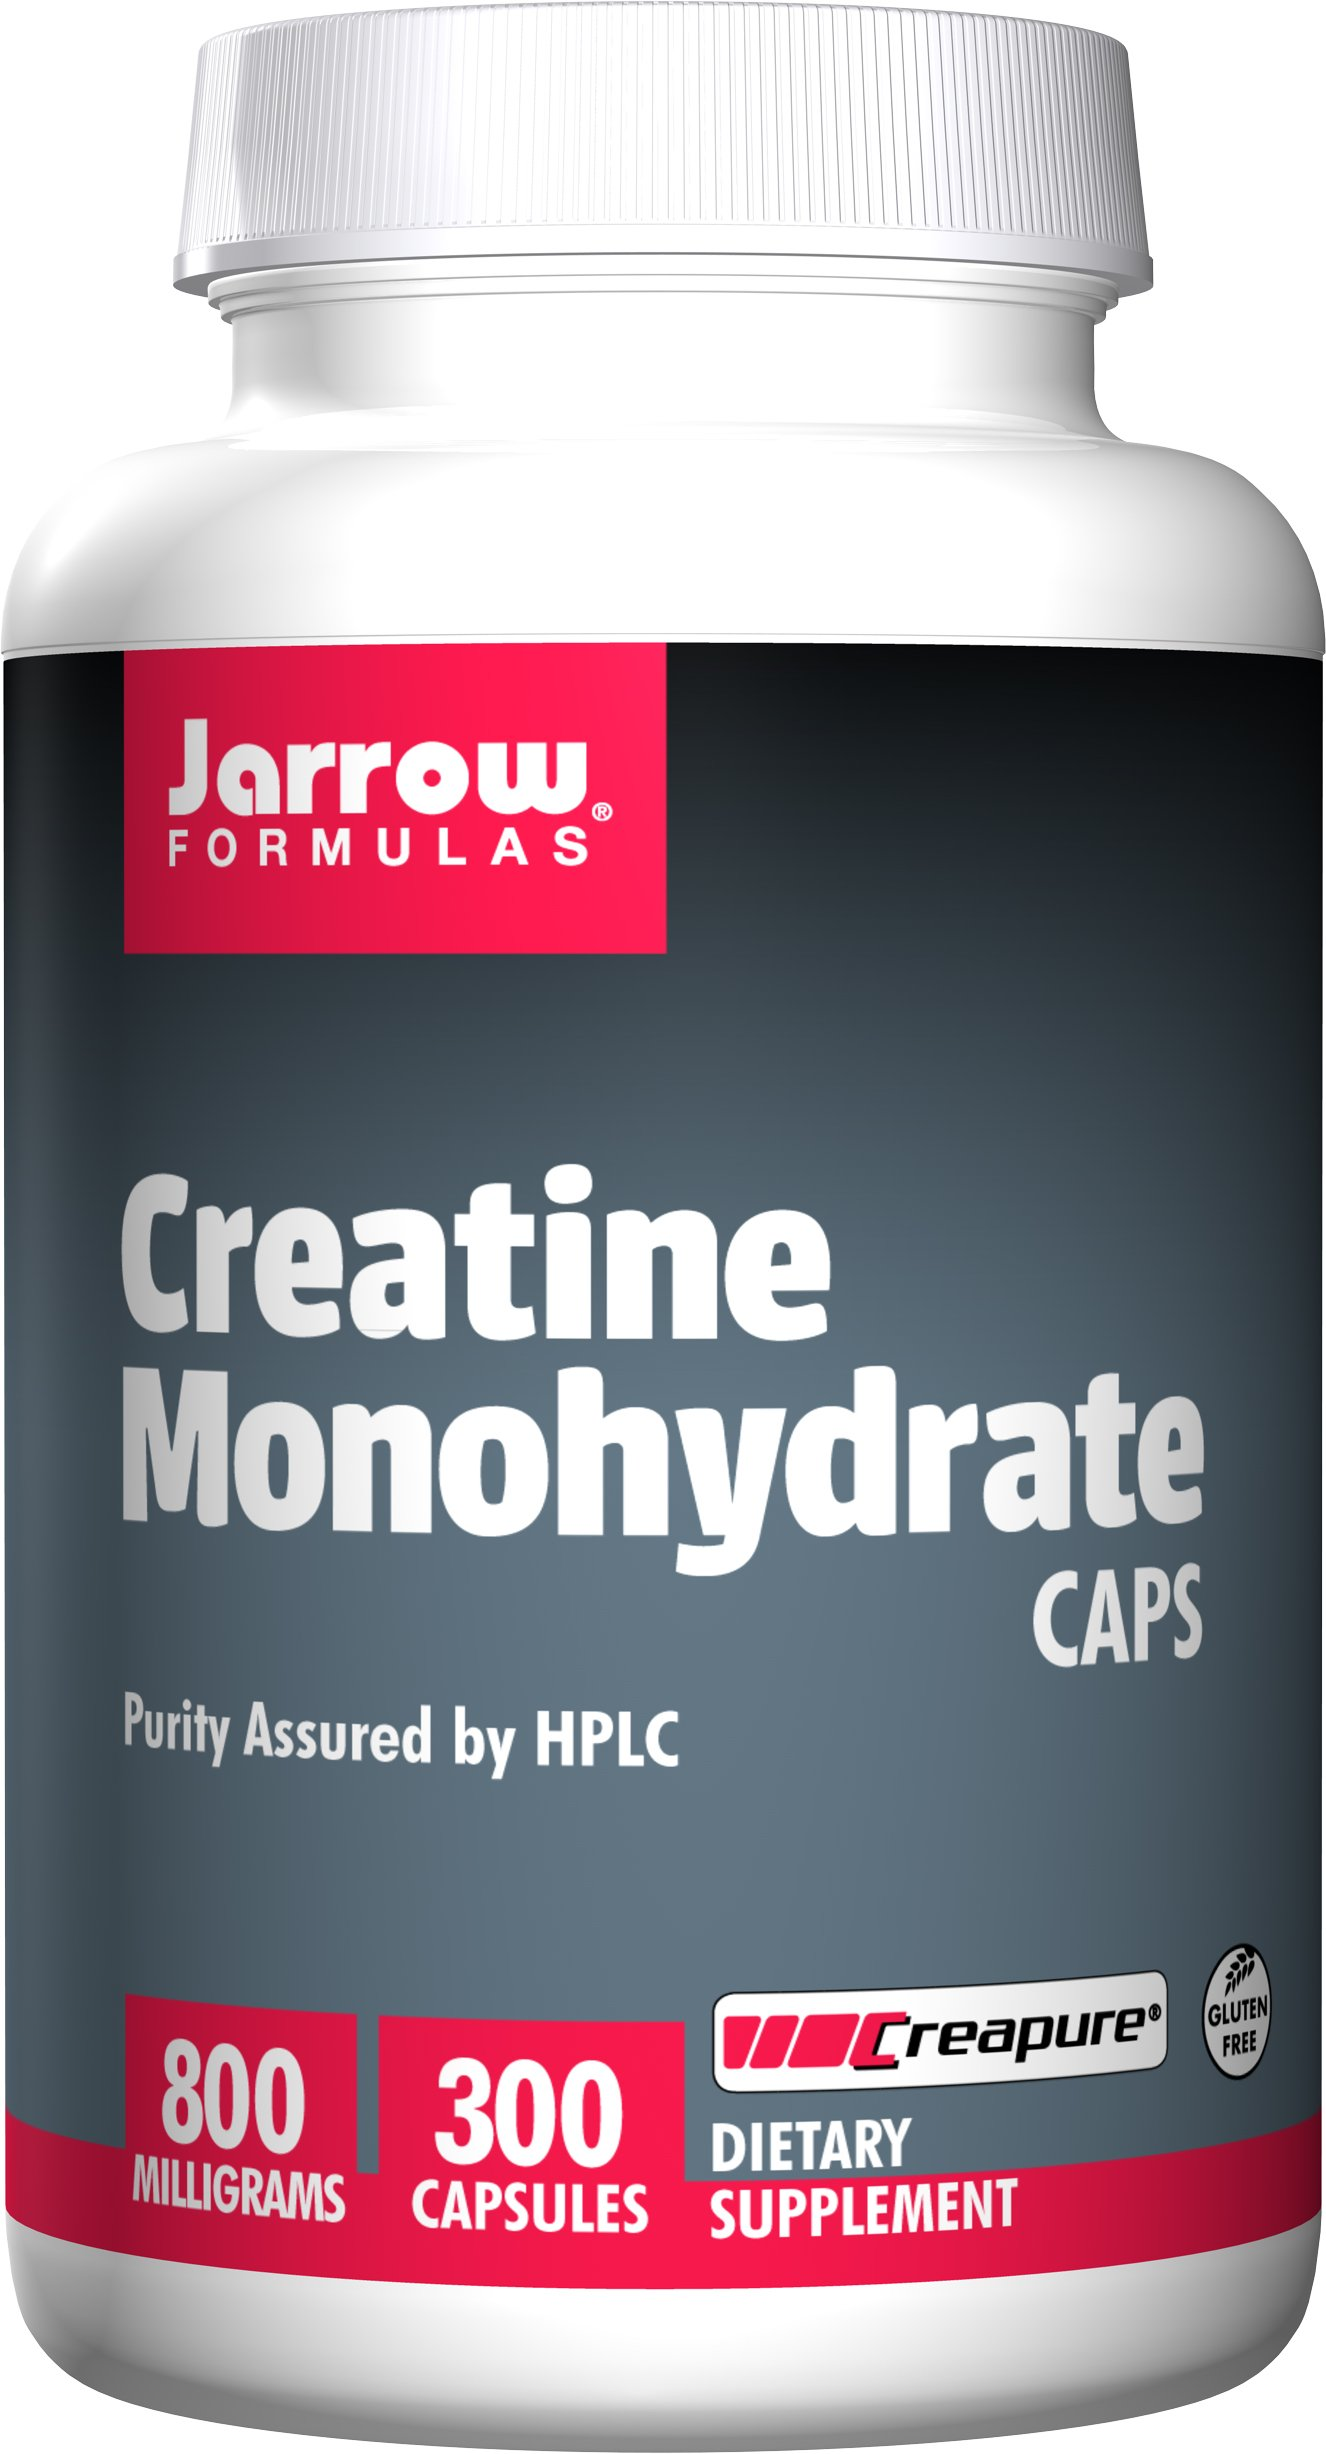 Jarrow Formulas Creatine Monohydrate, Assists in Sports Performance, 800 mg, 300 Capsules by Jarrow Formulas